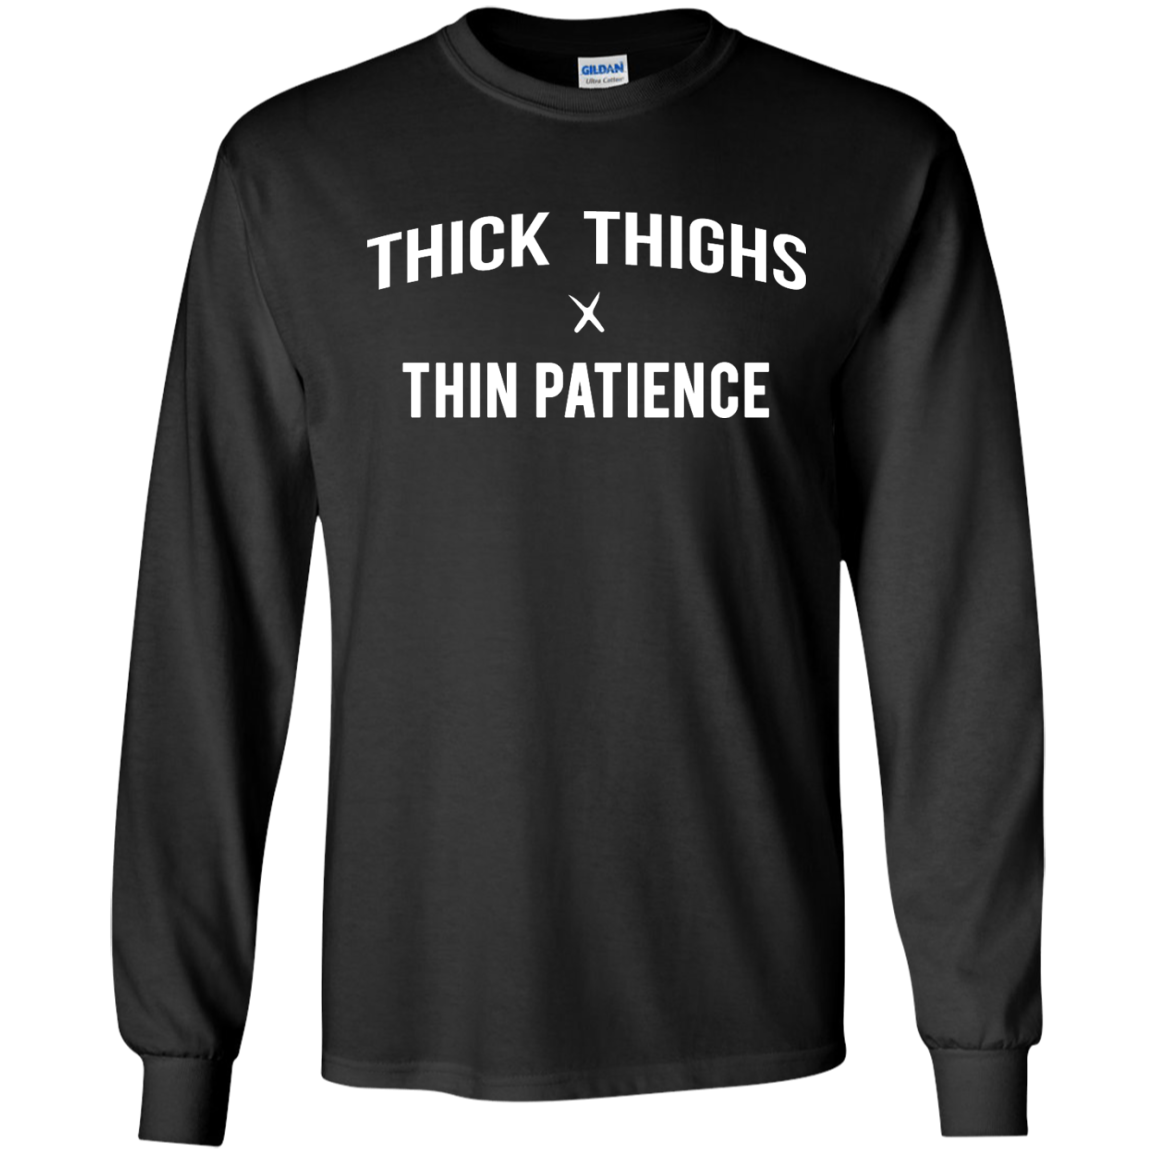 Thick thighs thin patience t shirt tank top long sleeve for Thick long sleeve shirts